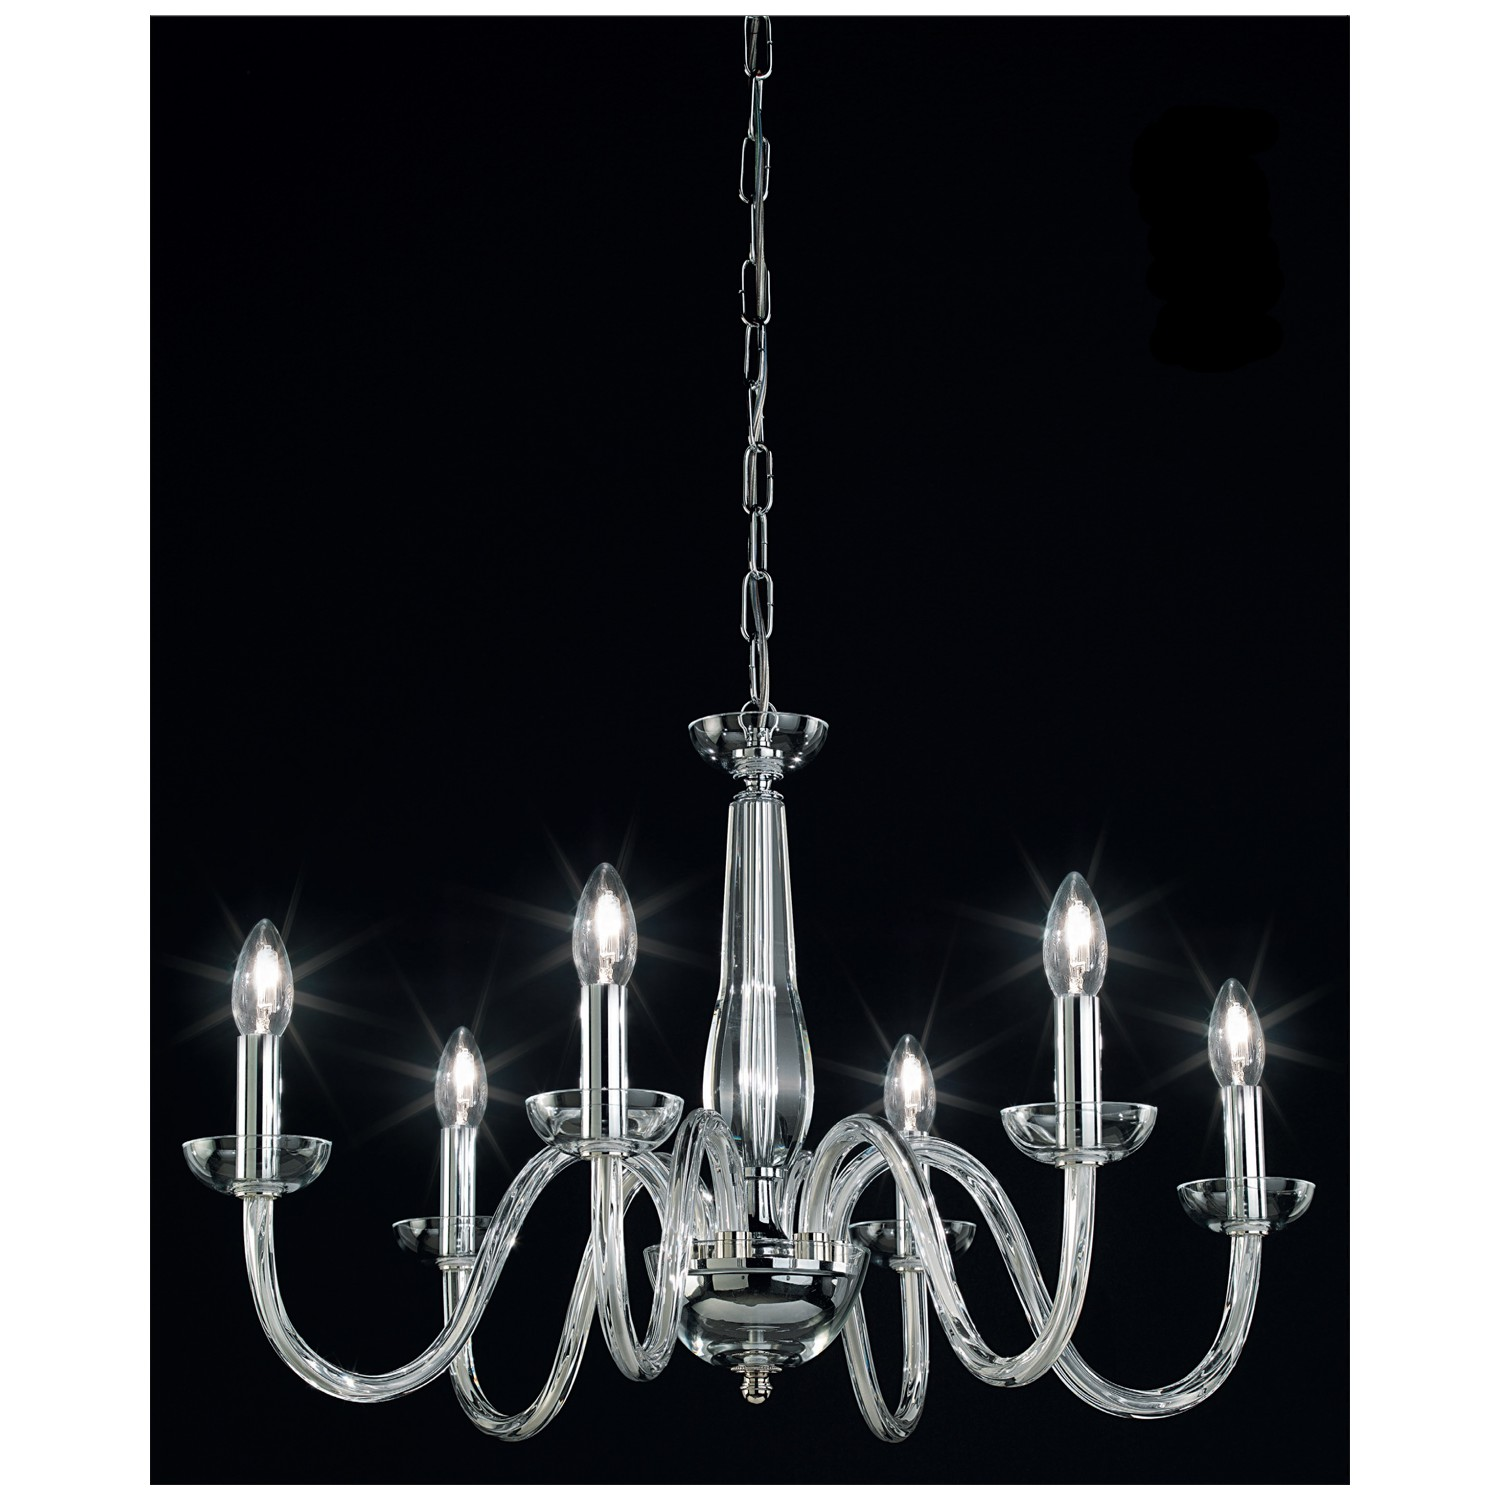 Or blown glass chandelier 101 6 Blown glass chandelier